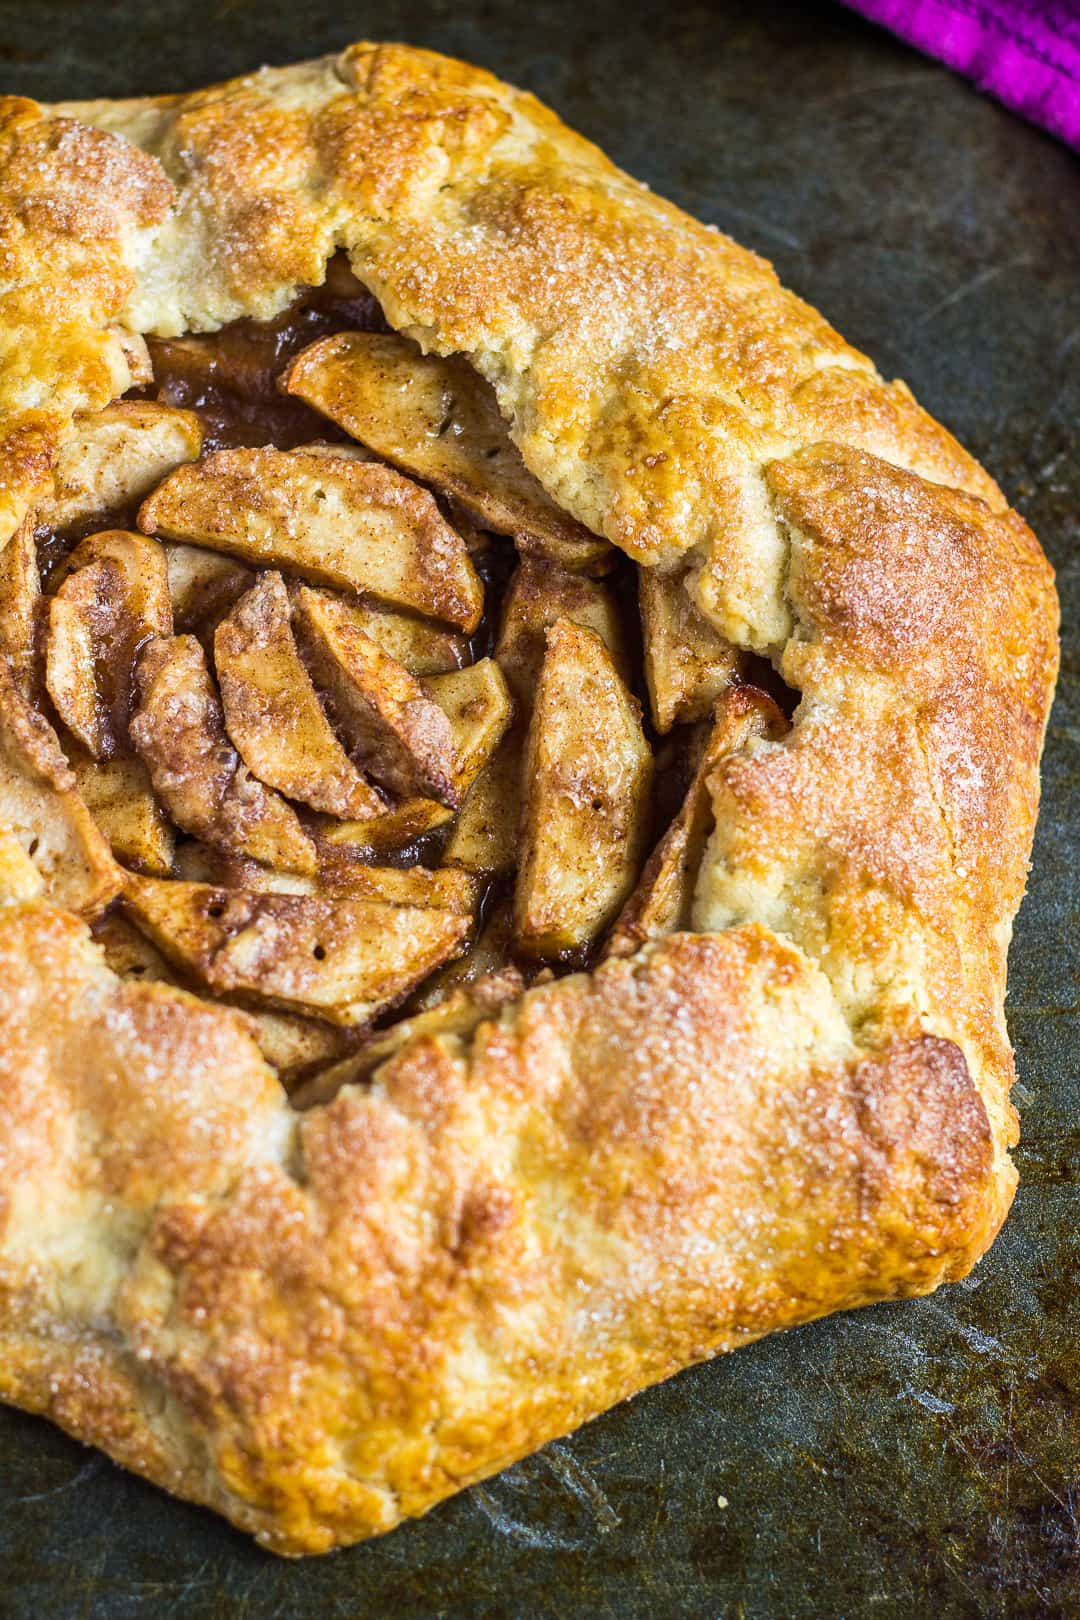 Overhead shot of a homemade apple galette on a baking tray.